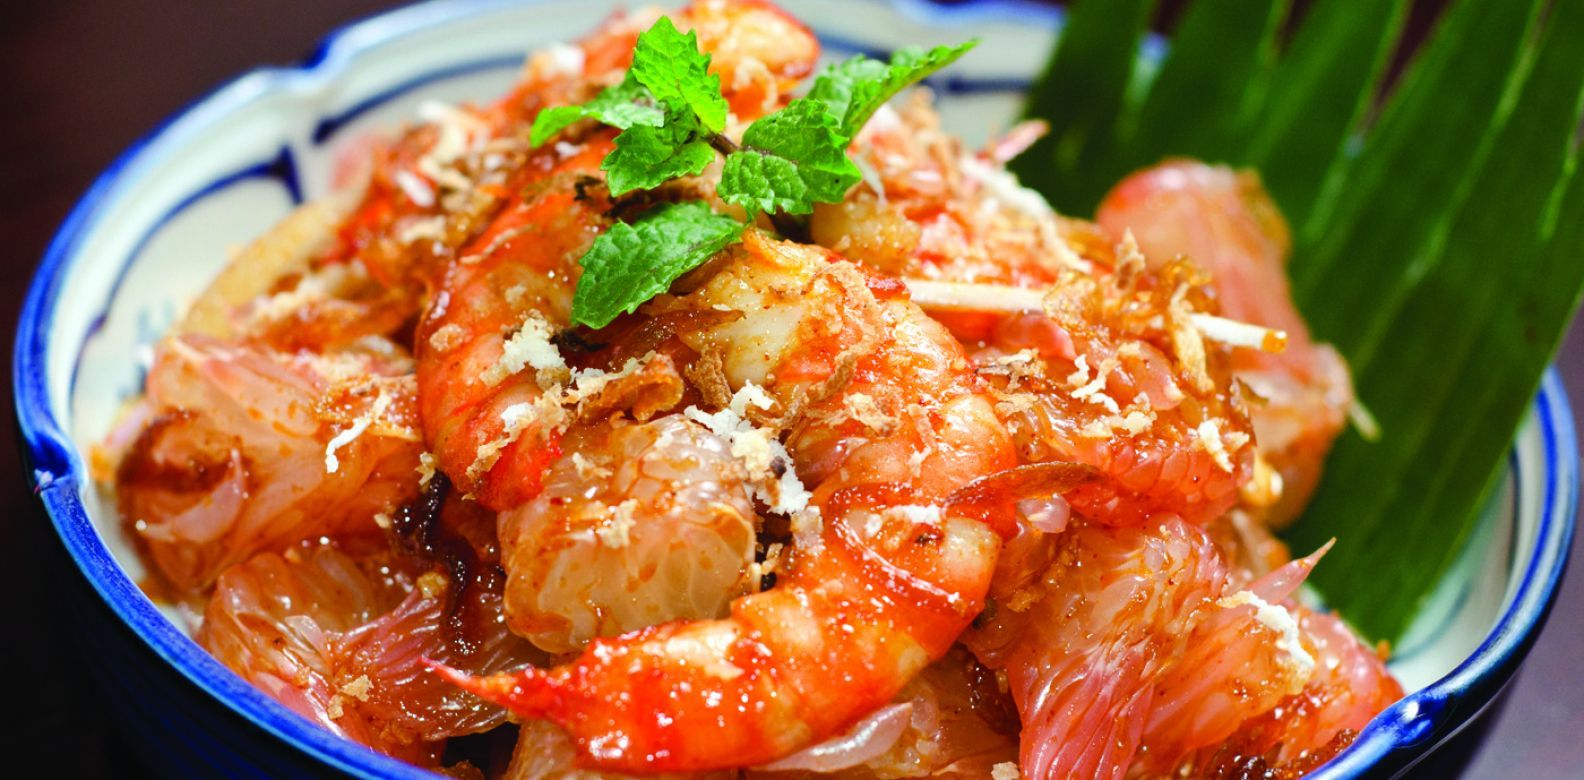 7 Best Restaurants That Hit All Our Asian Cuisine Cravings